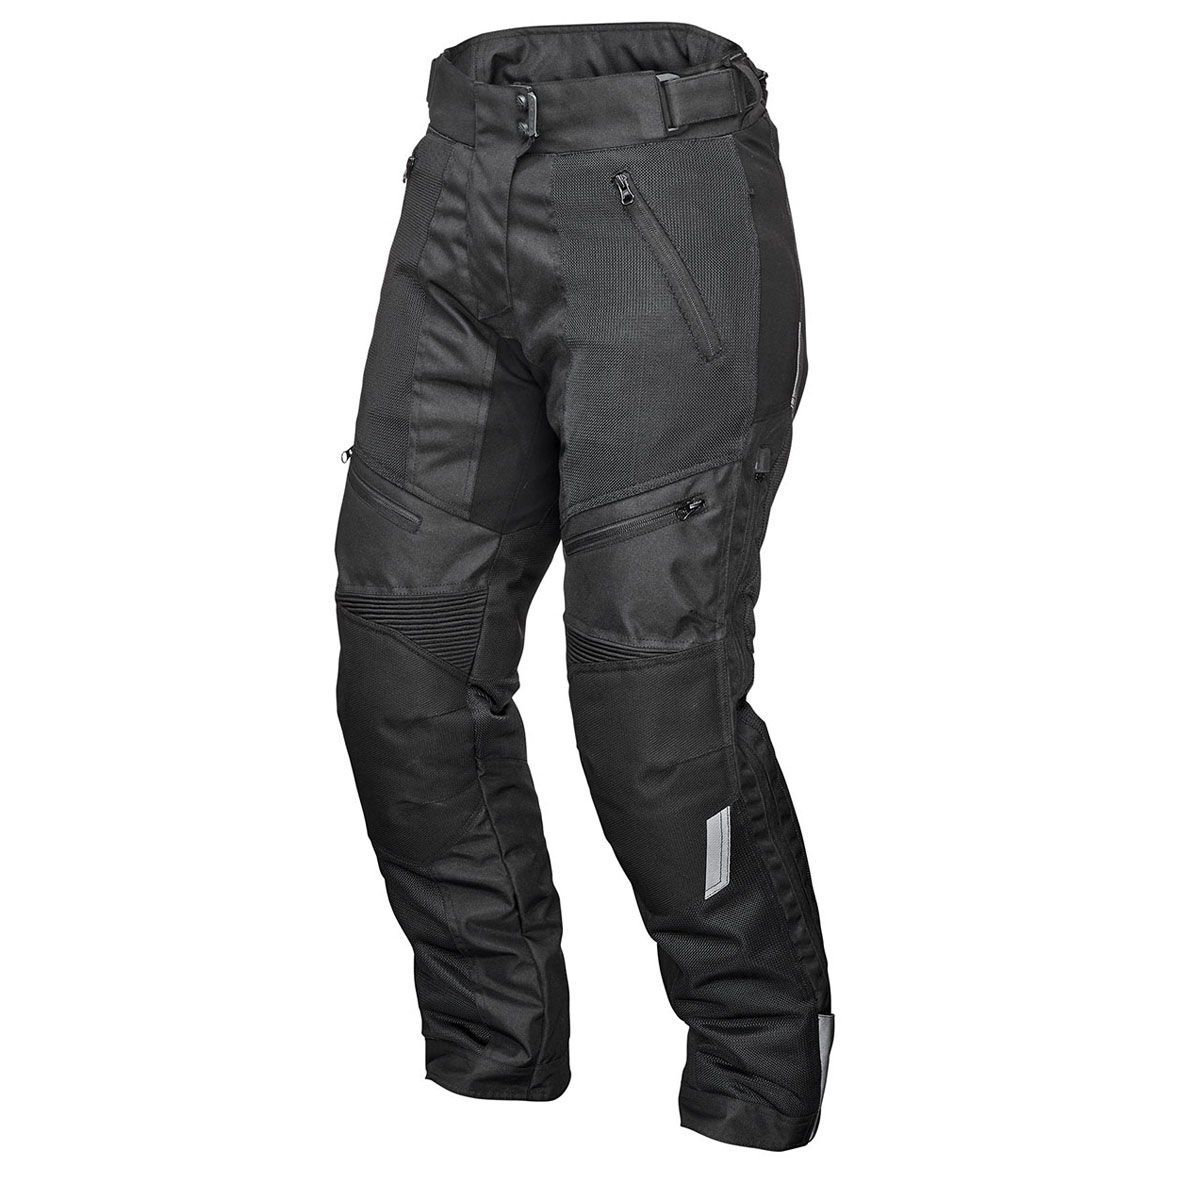 Firstgear Women's Sirocco Mesh Black Overpants